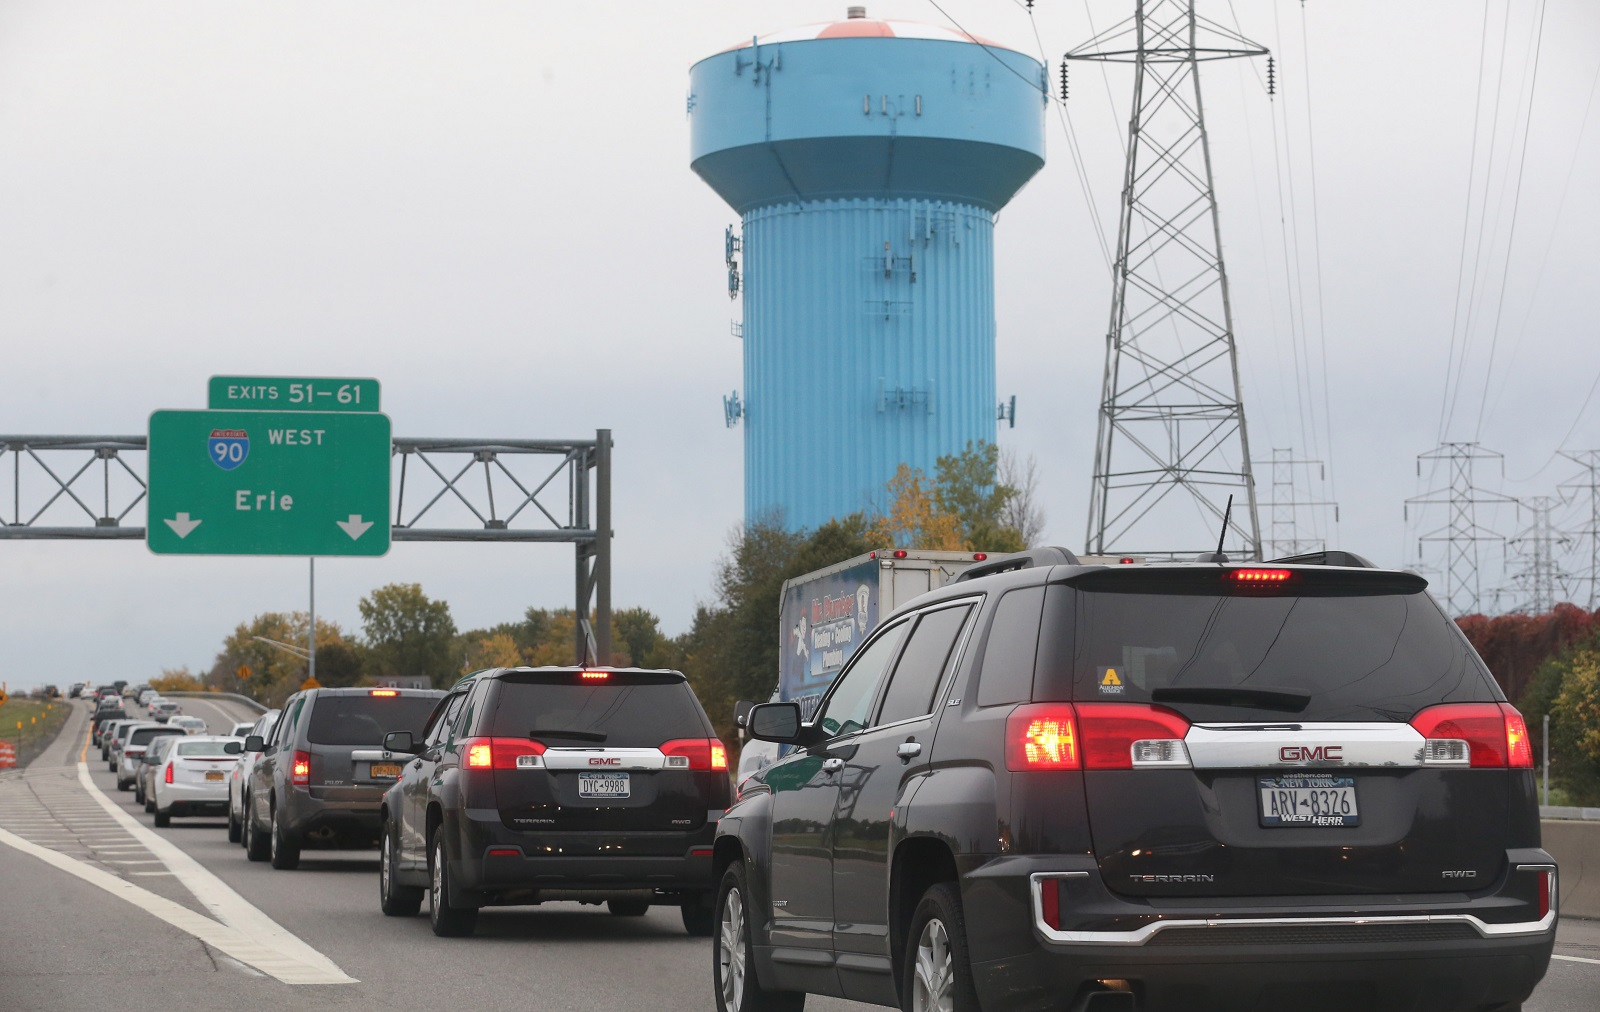 The Town of Amherst blue water tower looms large during rush hour traffic at the interchange highways I-90, I-290 and NY33, on Oct. 26, 2016. (Sharon Cantillon/Buffalo News)